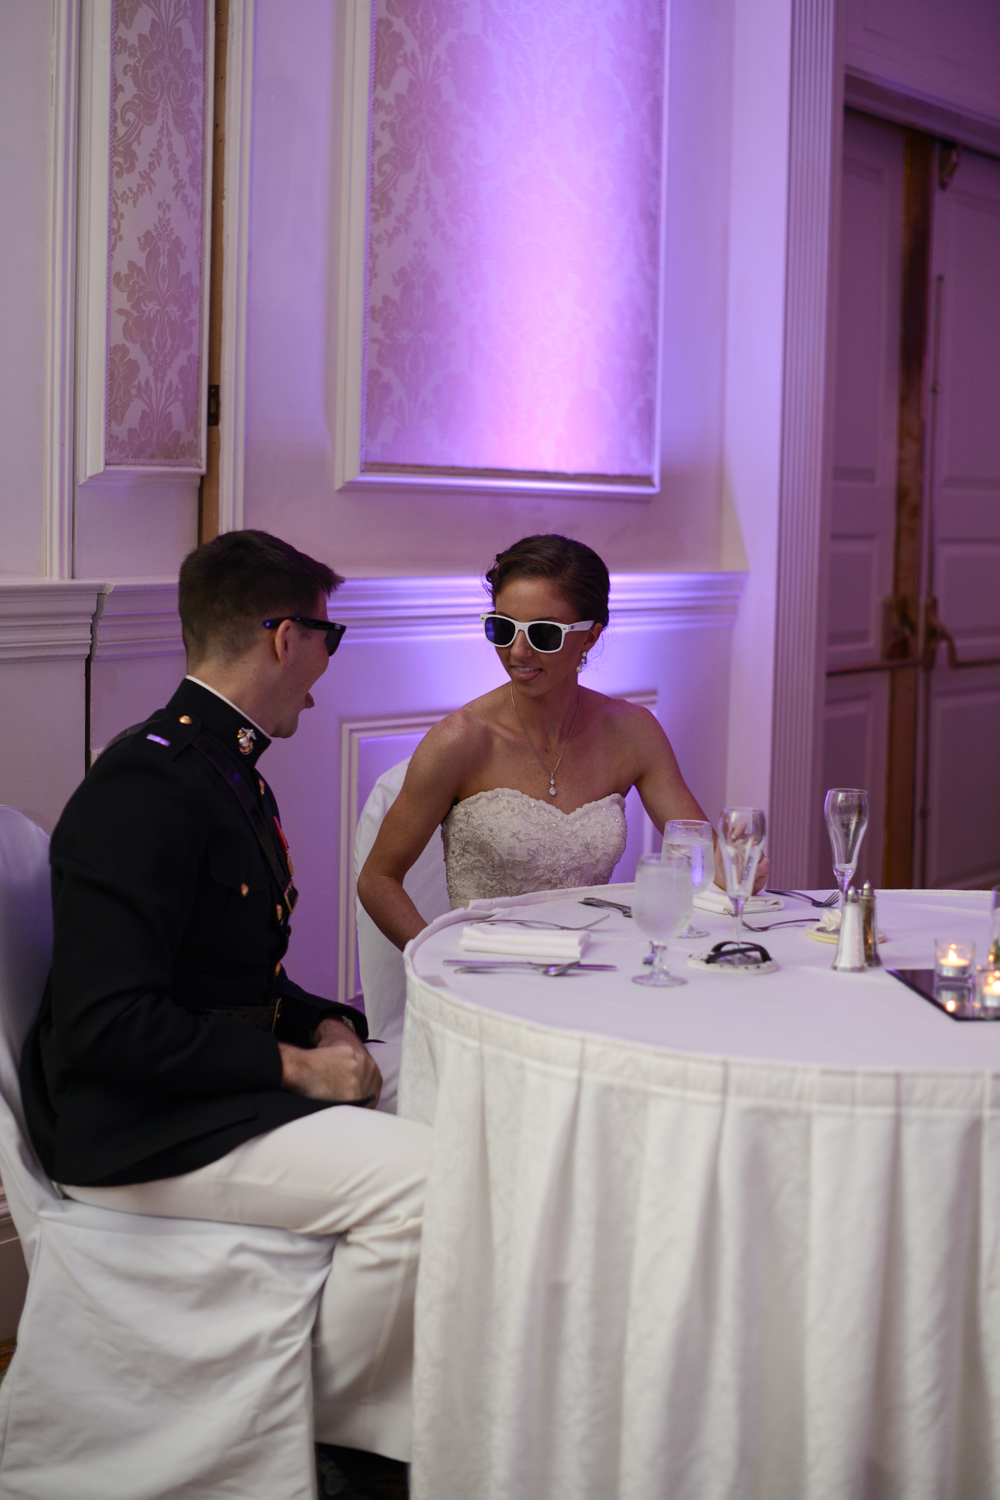 Bride and groom share special moment at their reception with sunglasses on |Maria Grace Photography